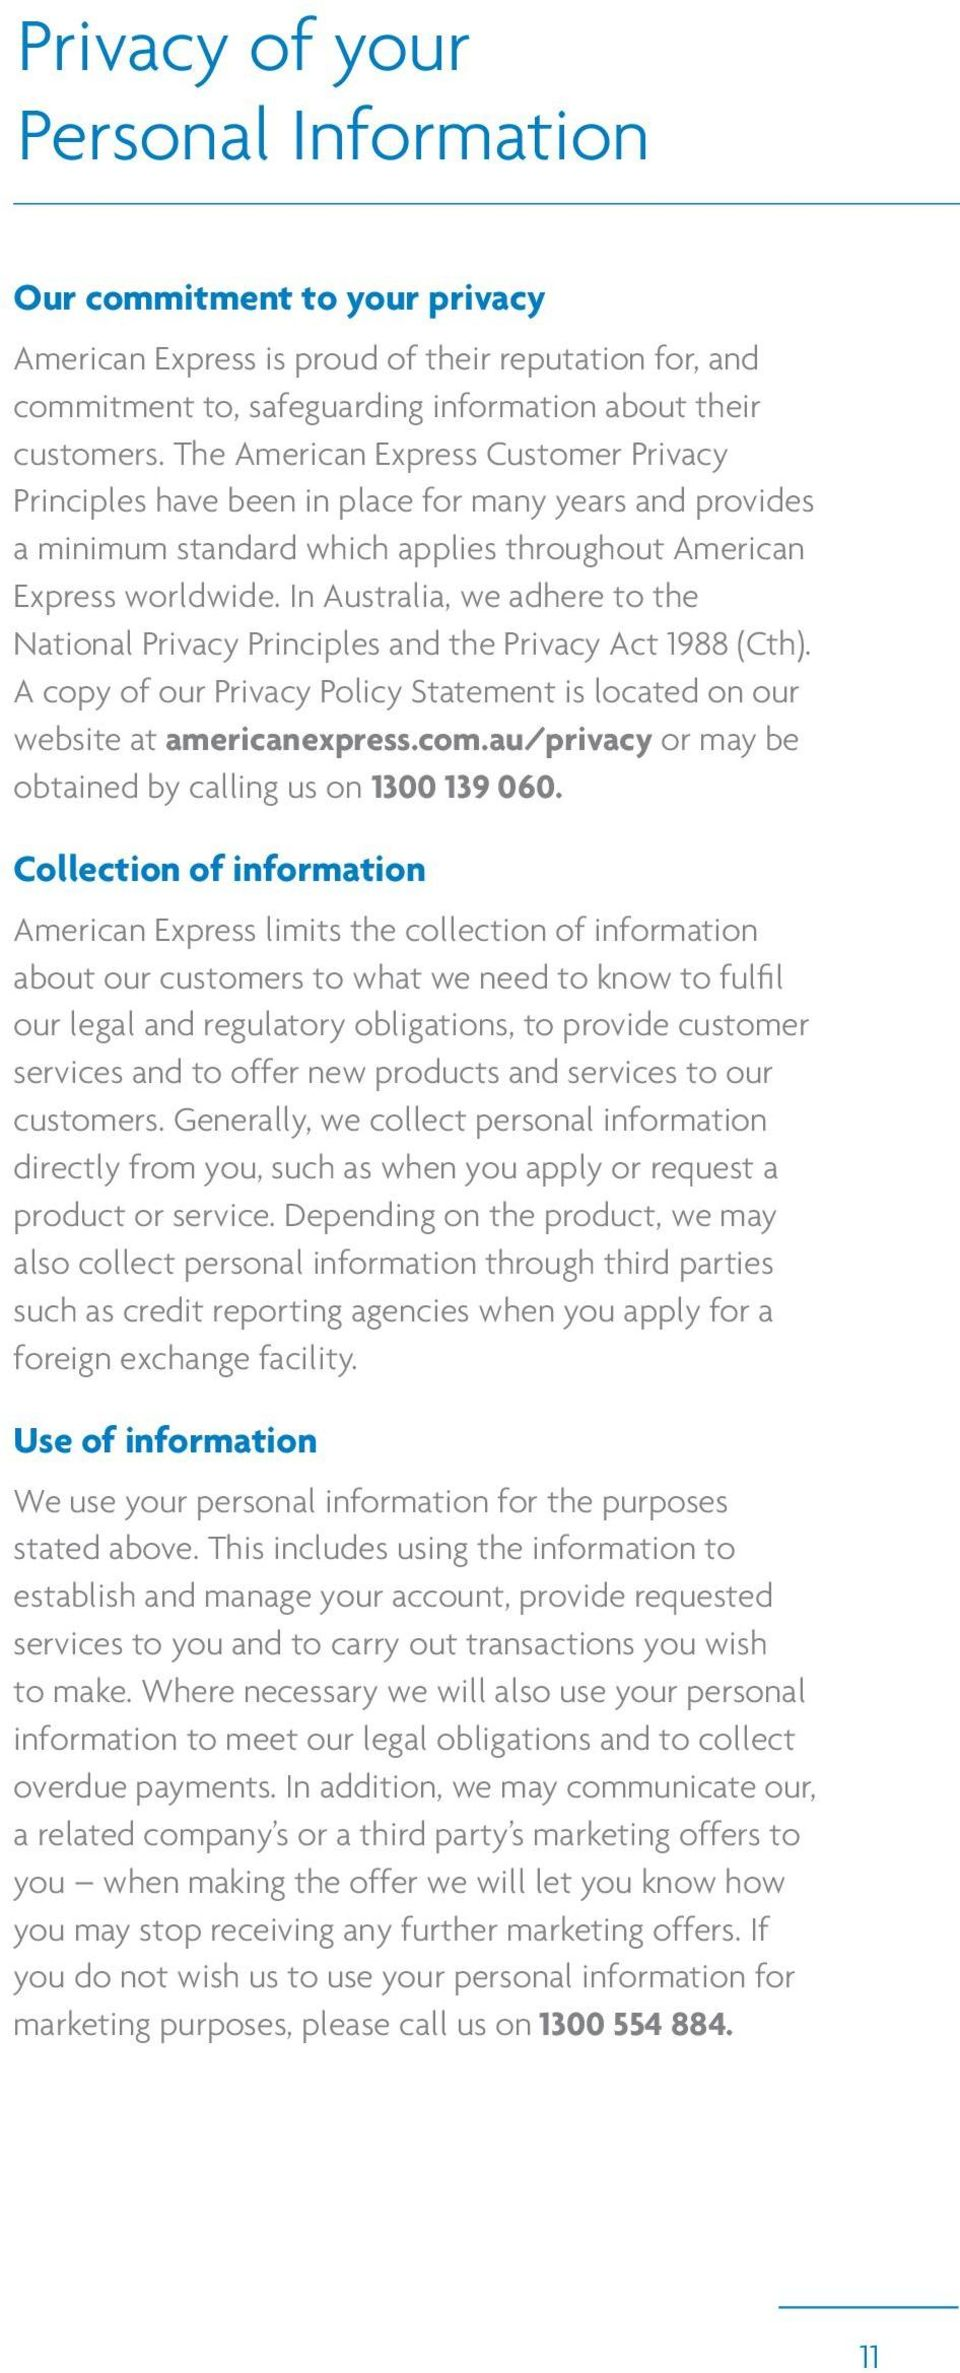 In Australia, we adhere to the National Privacy Principles and the Privacy Act 1988 (Cth). A copy of our Privacy Policy Statement is located on our website at americanexpress.com.